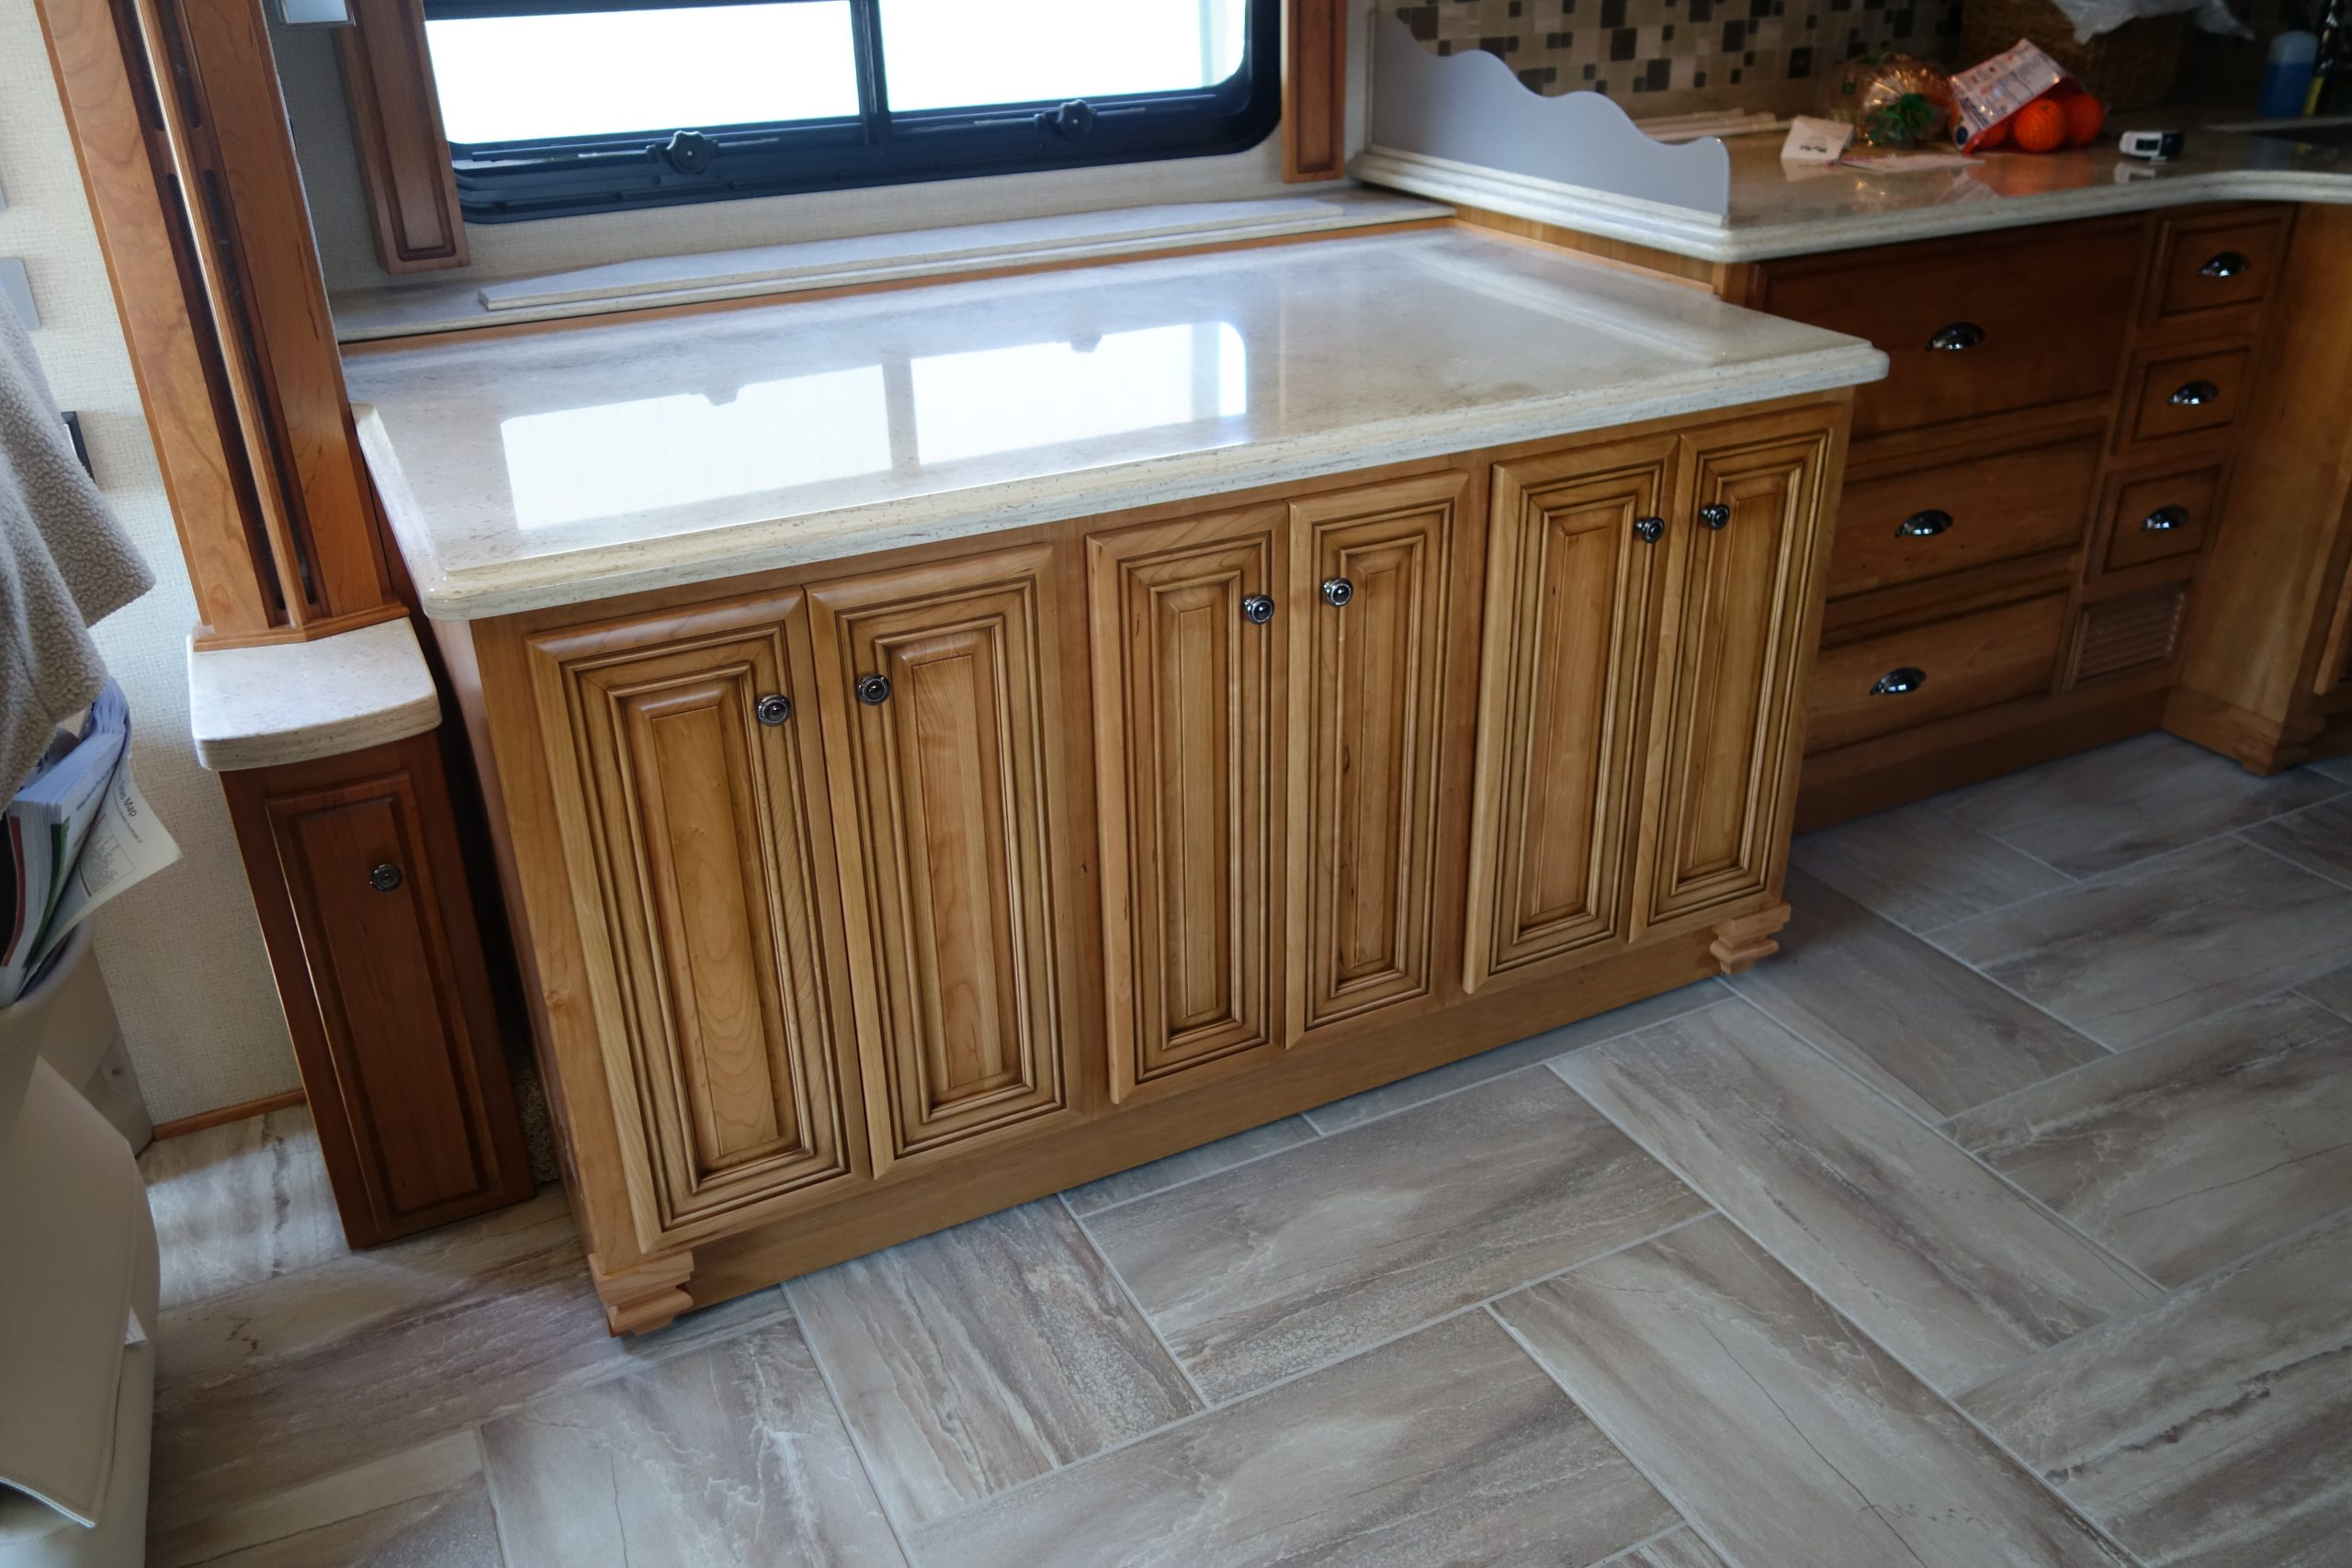 Custom cabinets with countertop